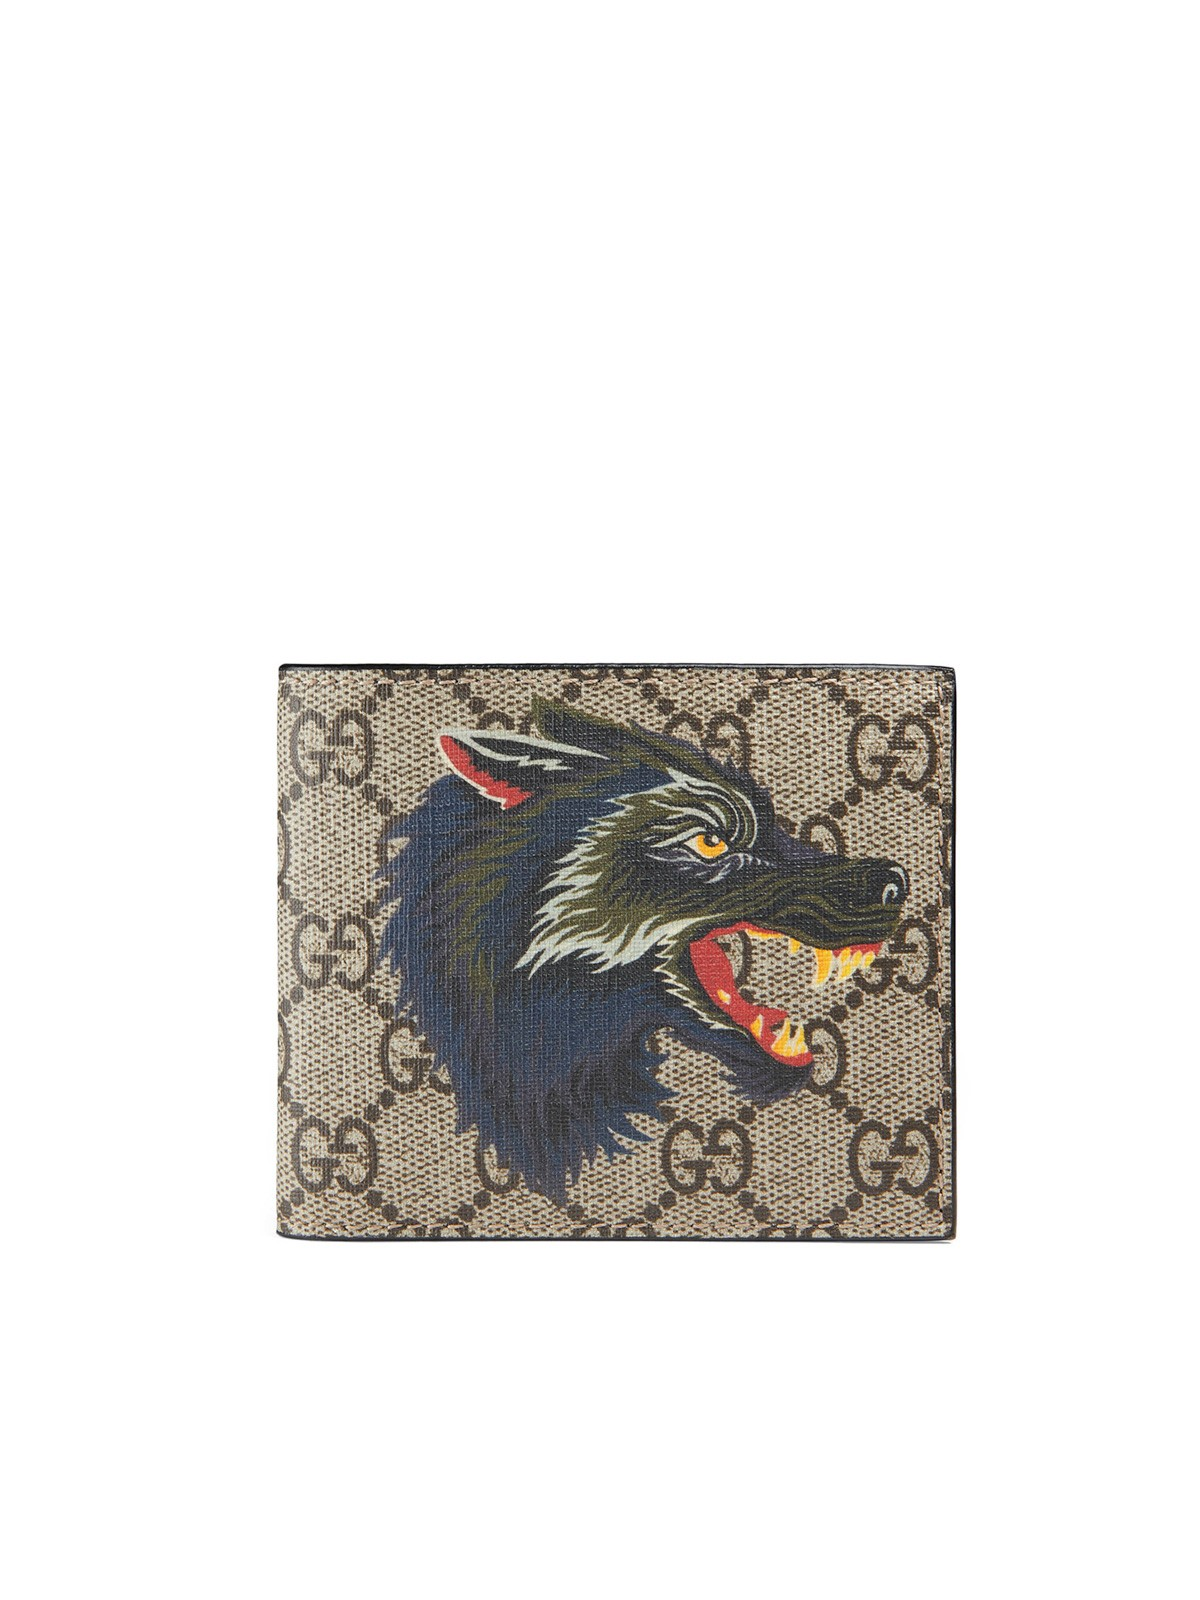 381837f5fc02 gucci WOLF PRINT WALLET available on montiboutique.com - 22300